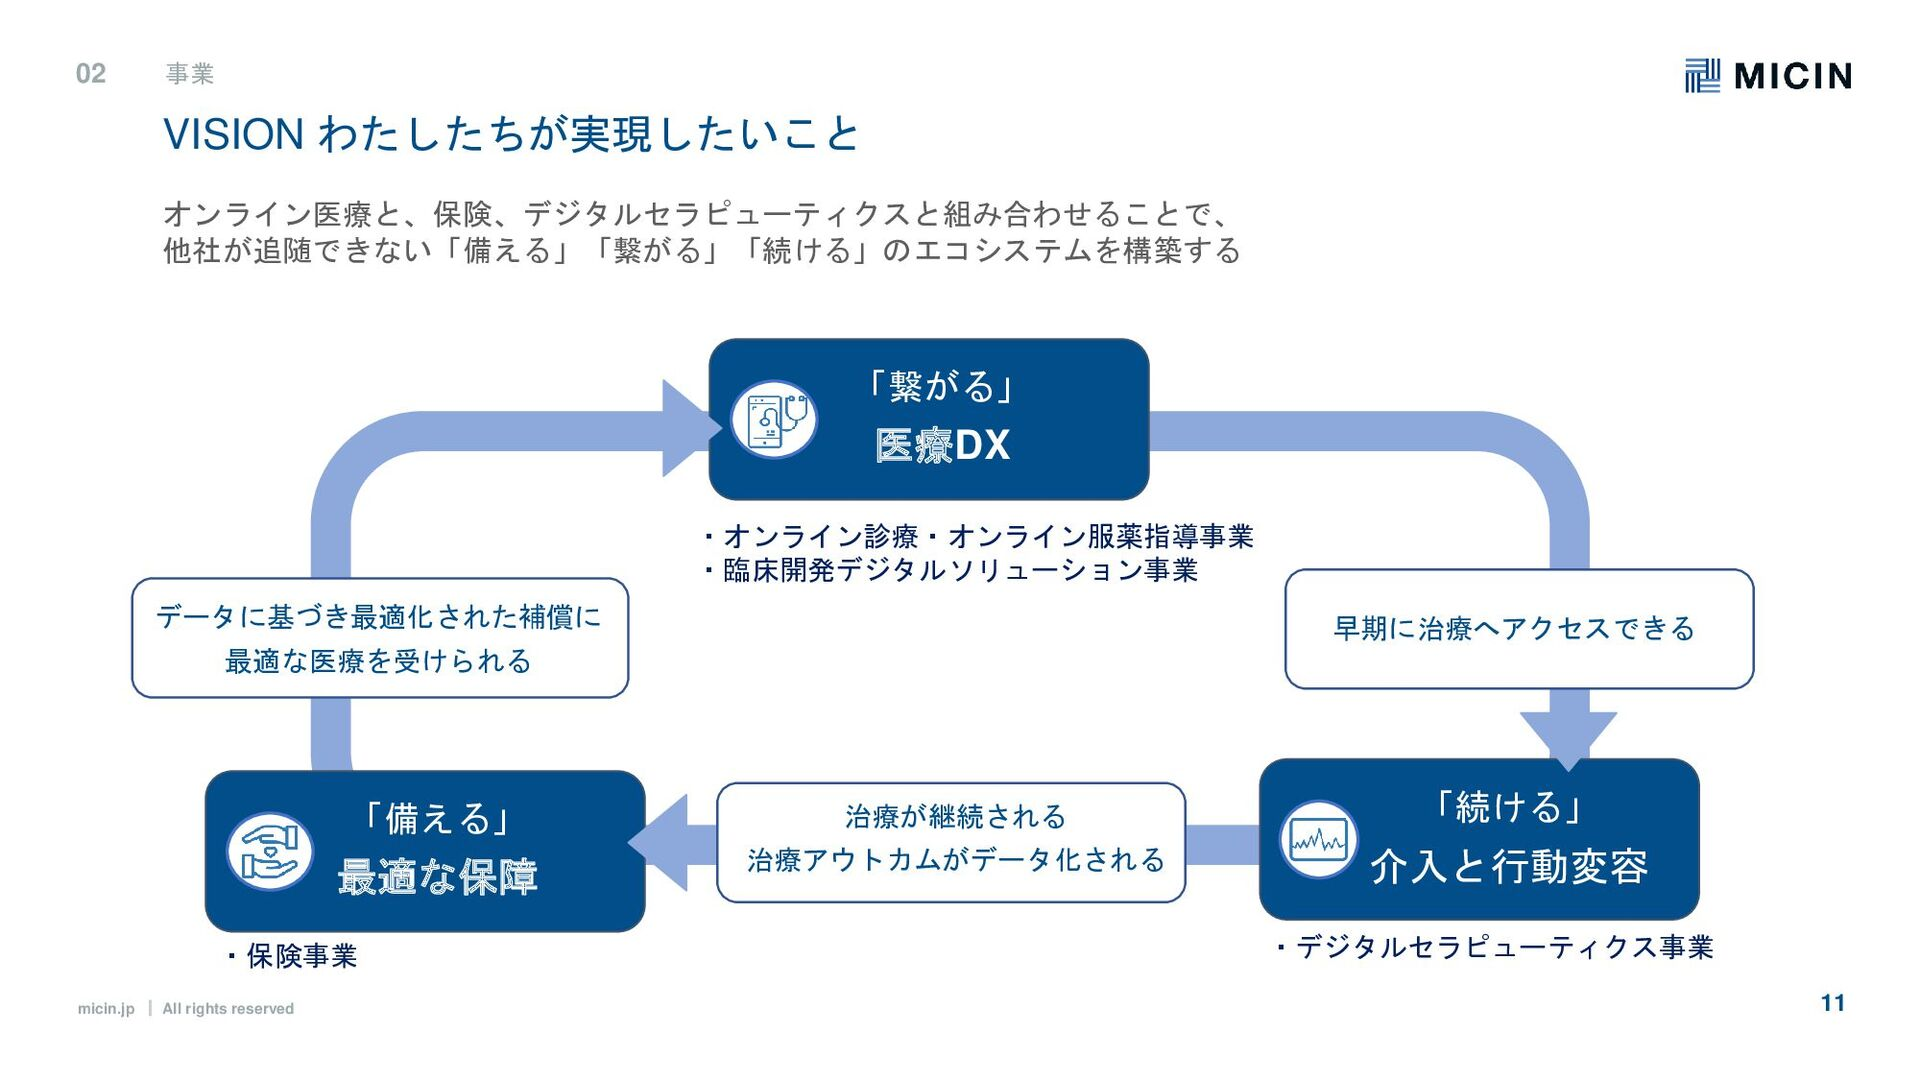 micin.jp ʛ All rights reserved 11 VISIONわたしたちが...